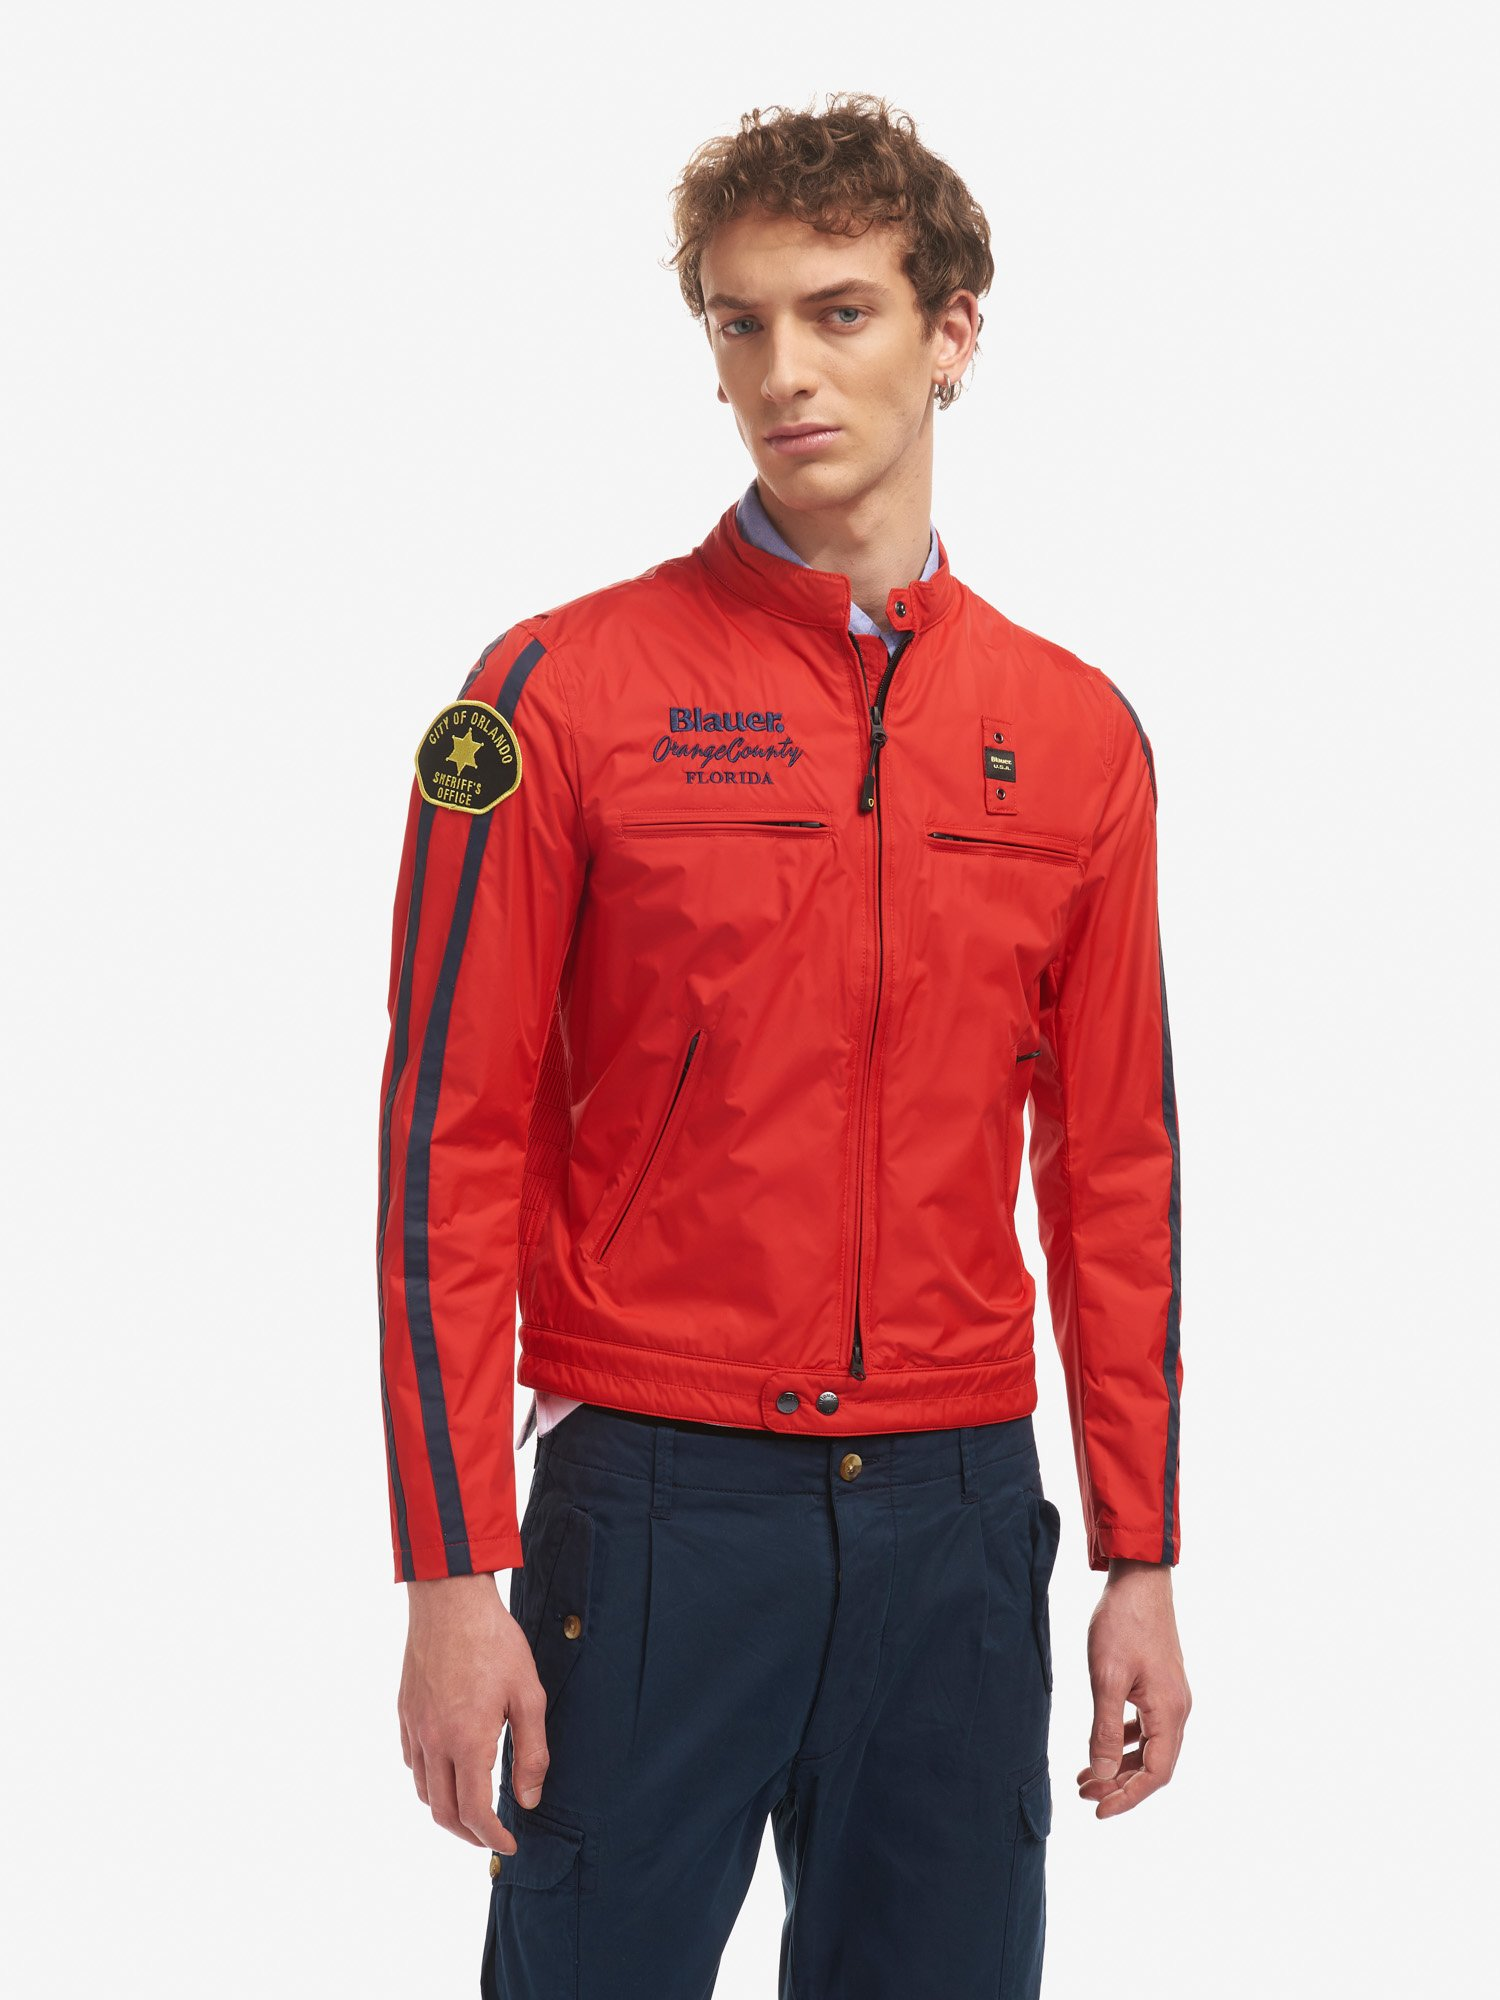 Blauer - MICHAEL BLAUER ORANGE COUNTY JACKET - Bright Red - Blauer